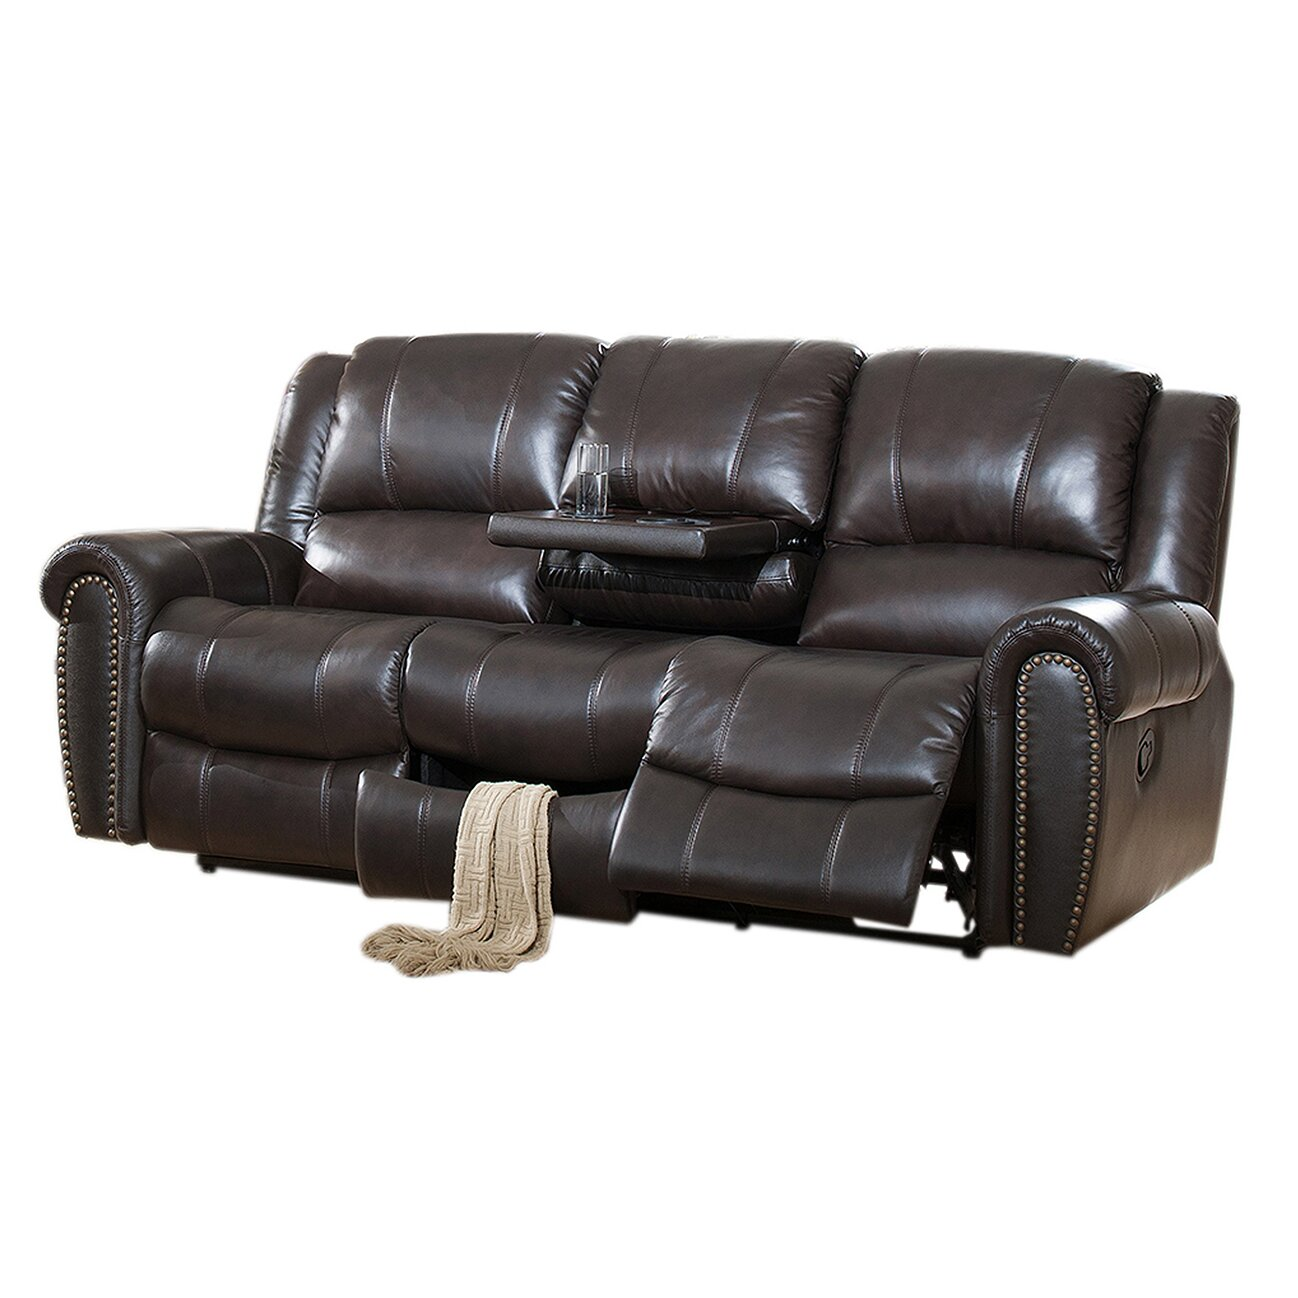 Marvelous Leather Recliner Sofa Set Living Hawthorne Brown Leather Ibusinesslaw Wood Chair Design Ideas Ibusinesslaworg